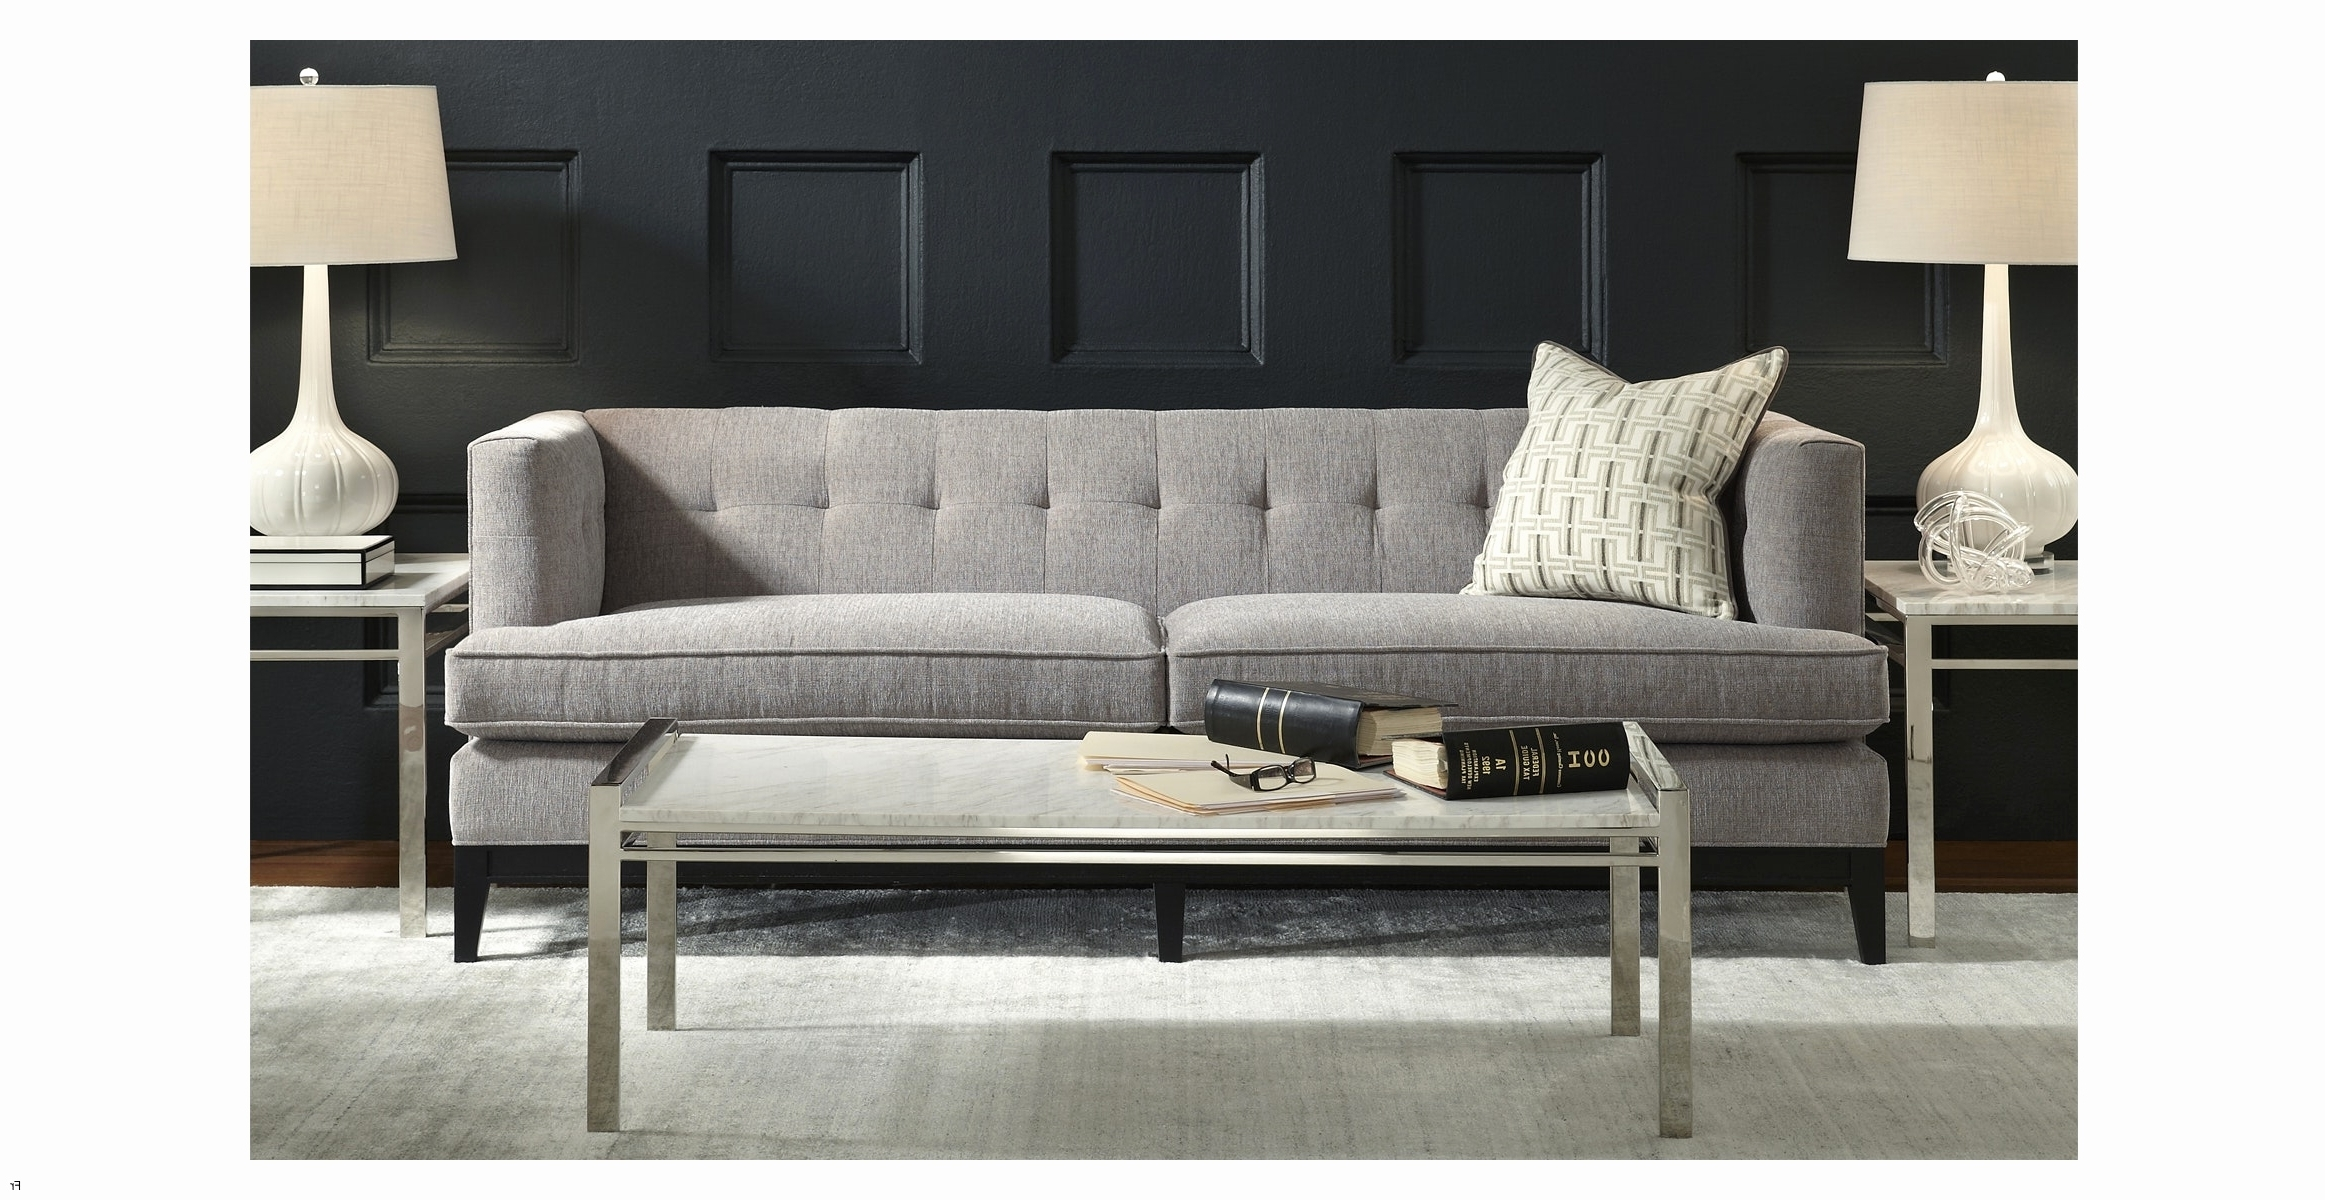 Best Mitchell Gold Sleeper Sofa Price 2018 – Couches And Sofas Ideas With Most Up To Date Mitchell Gold Sofas (View 9 of 15)